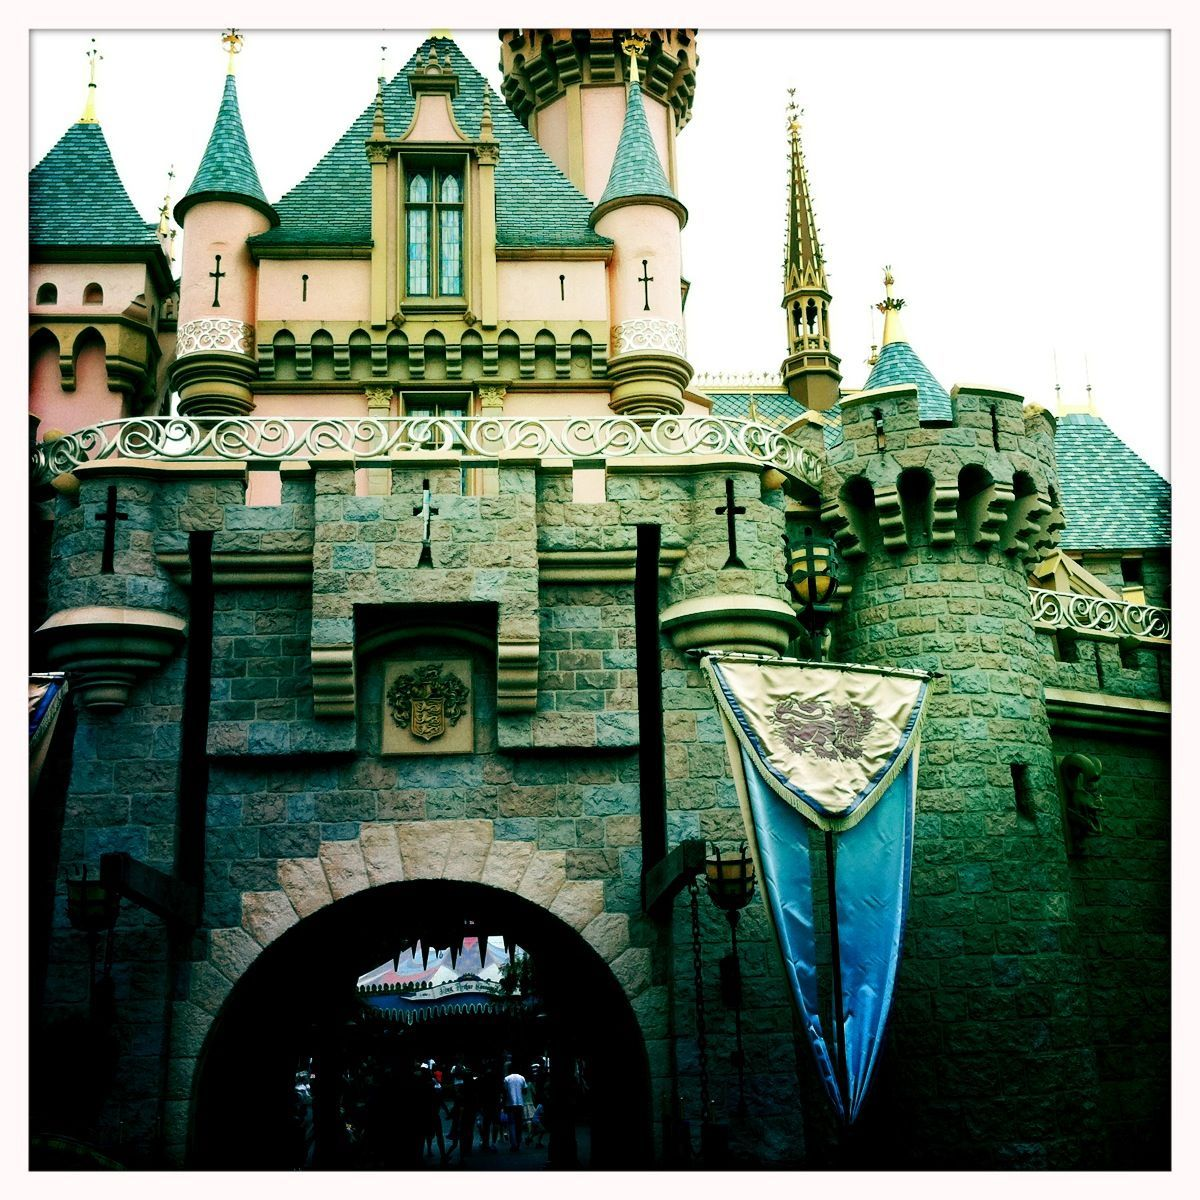 A Girl's Guide to Disneyland: 9 Magical Memories to Make (Not to leave the girls out #spon)